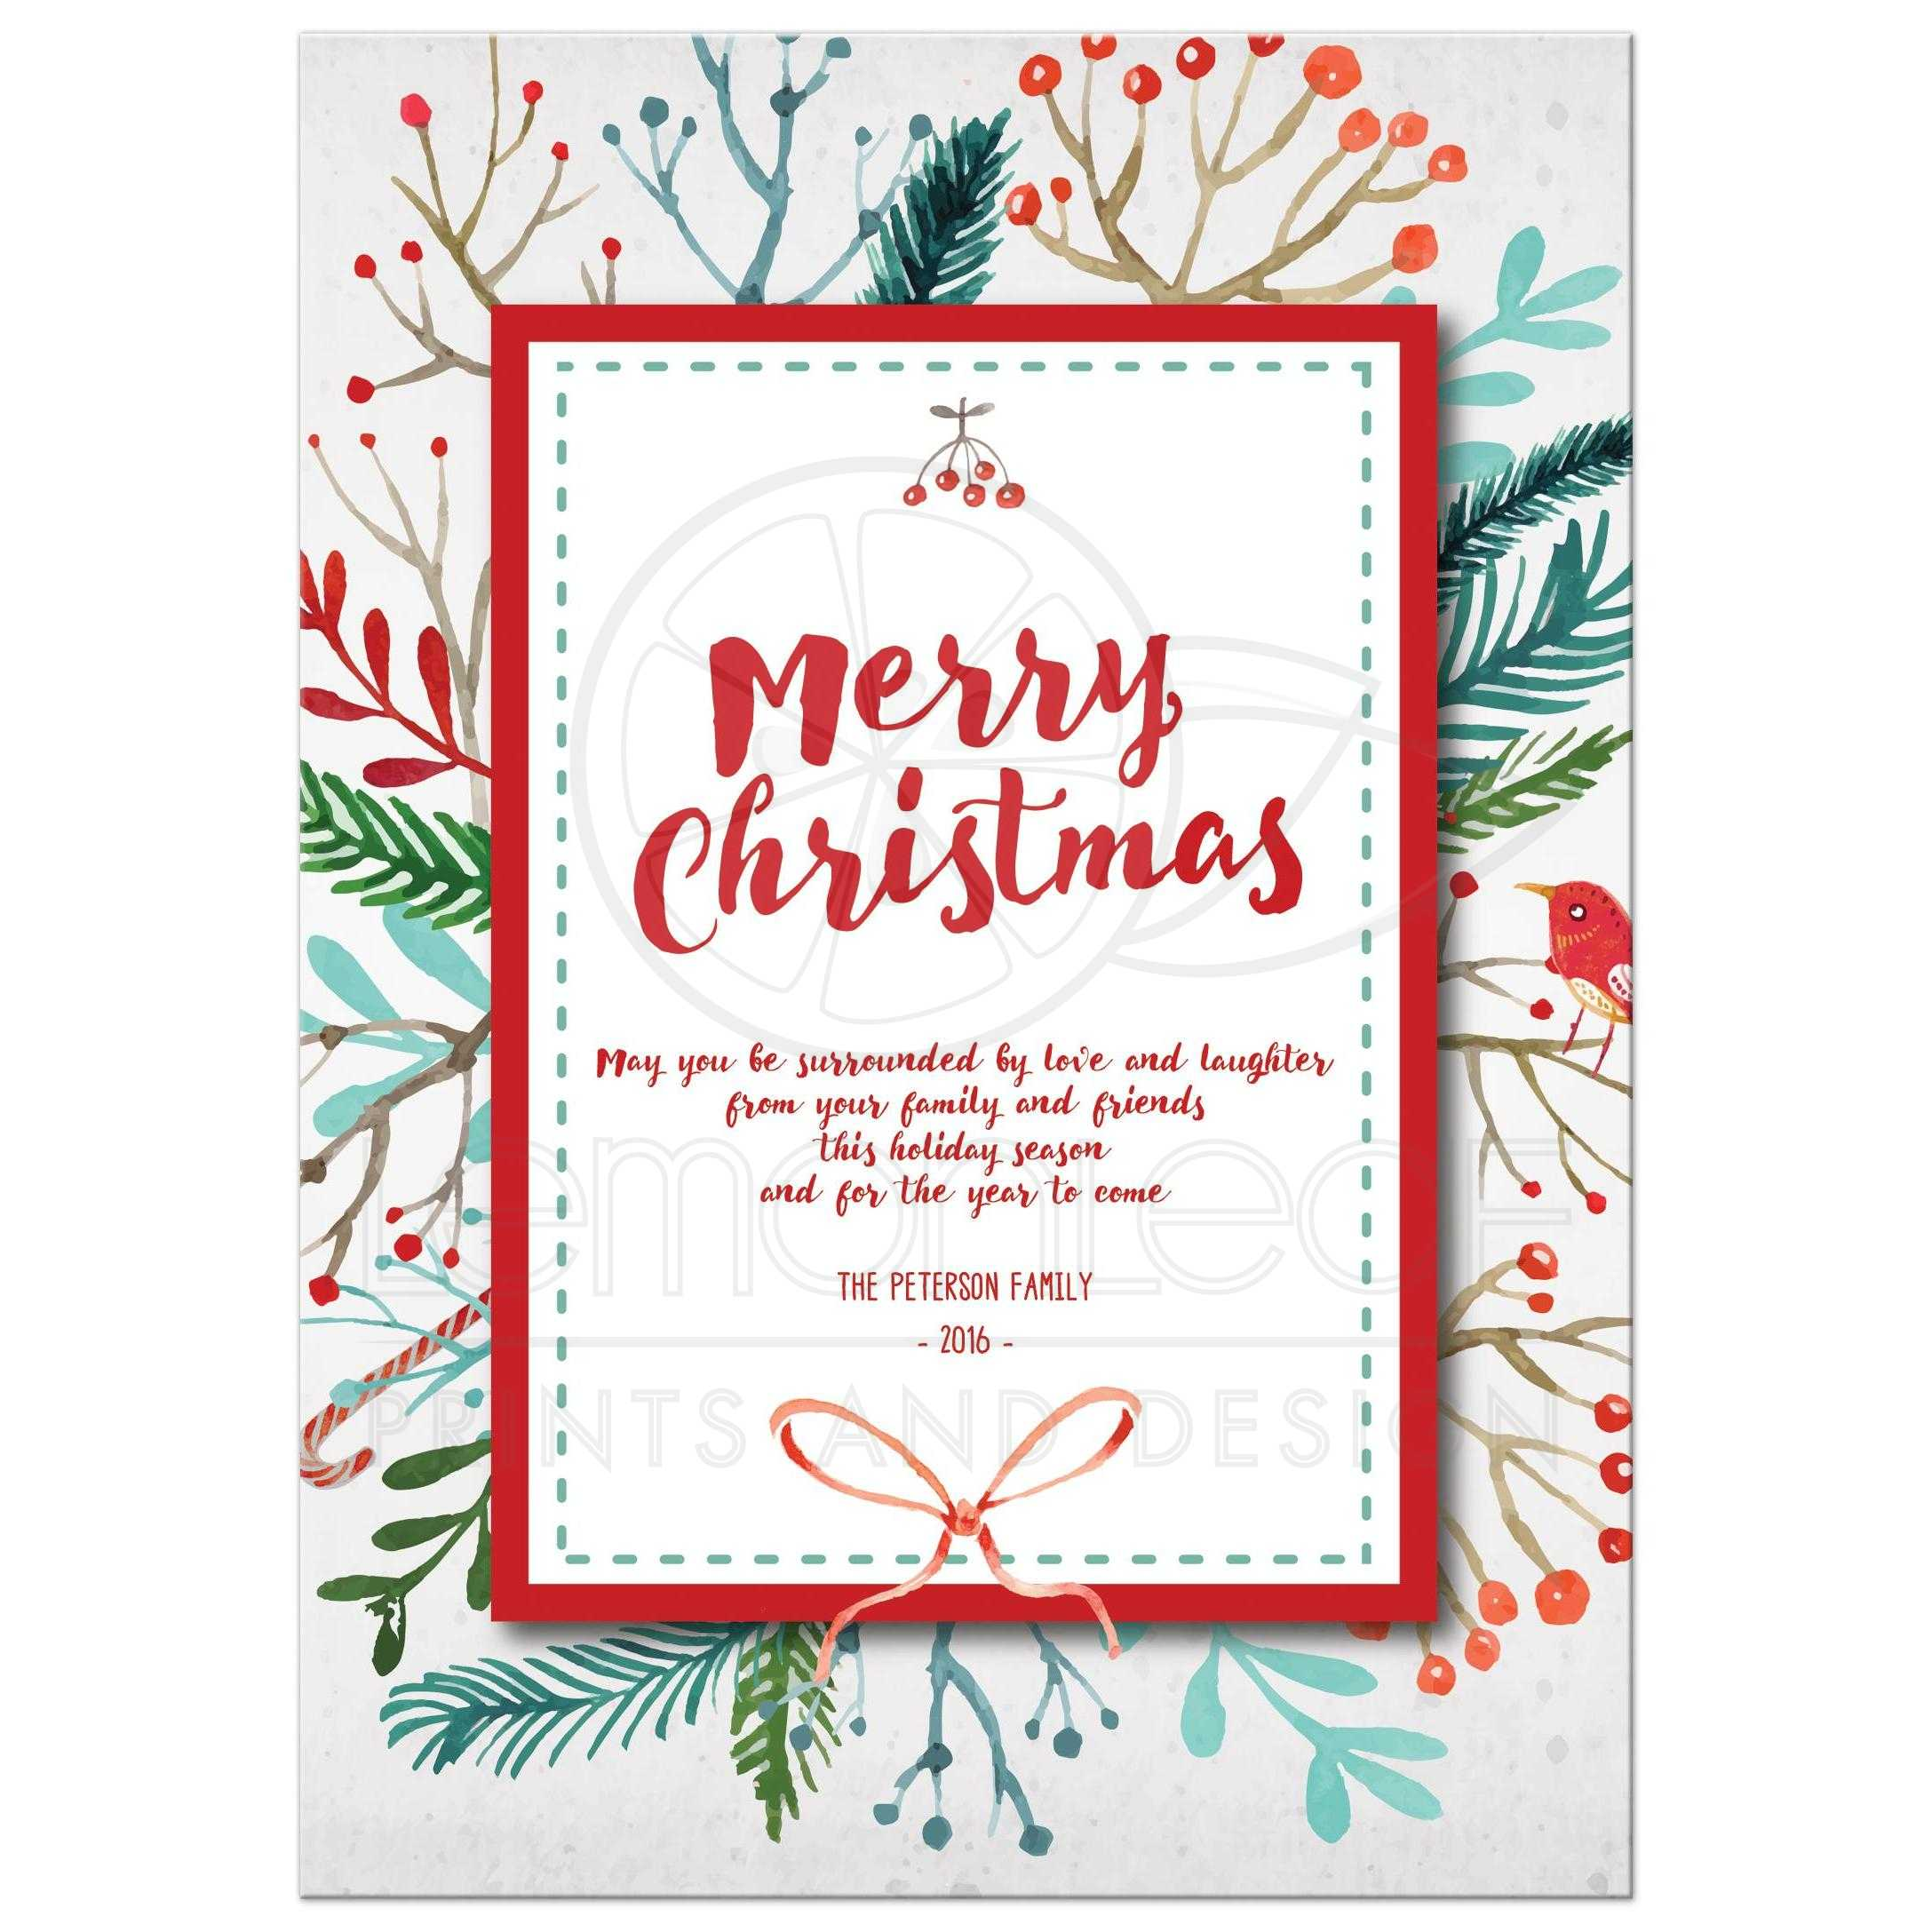 Merry Christmas Card - Watercolor Holiday Foliage